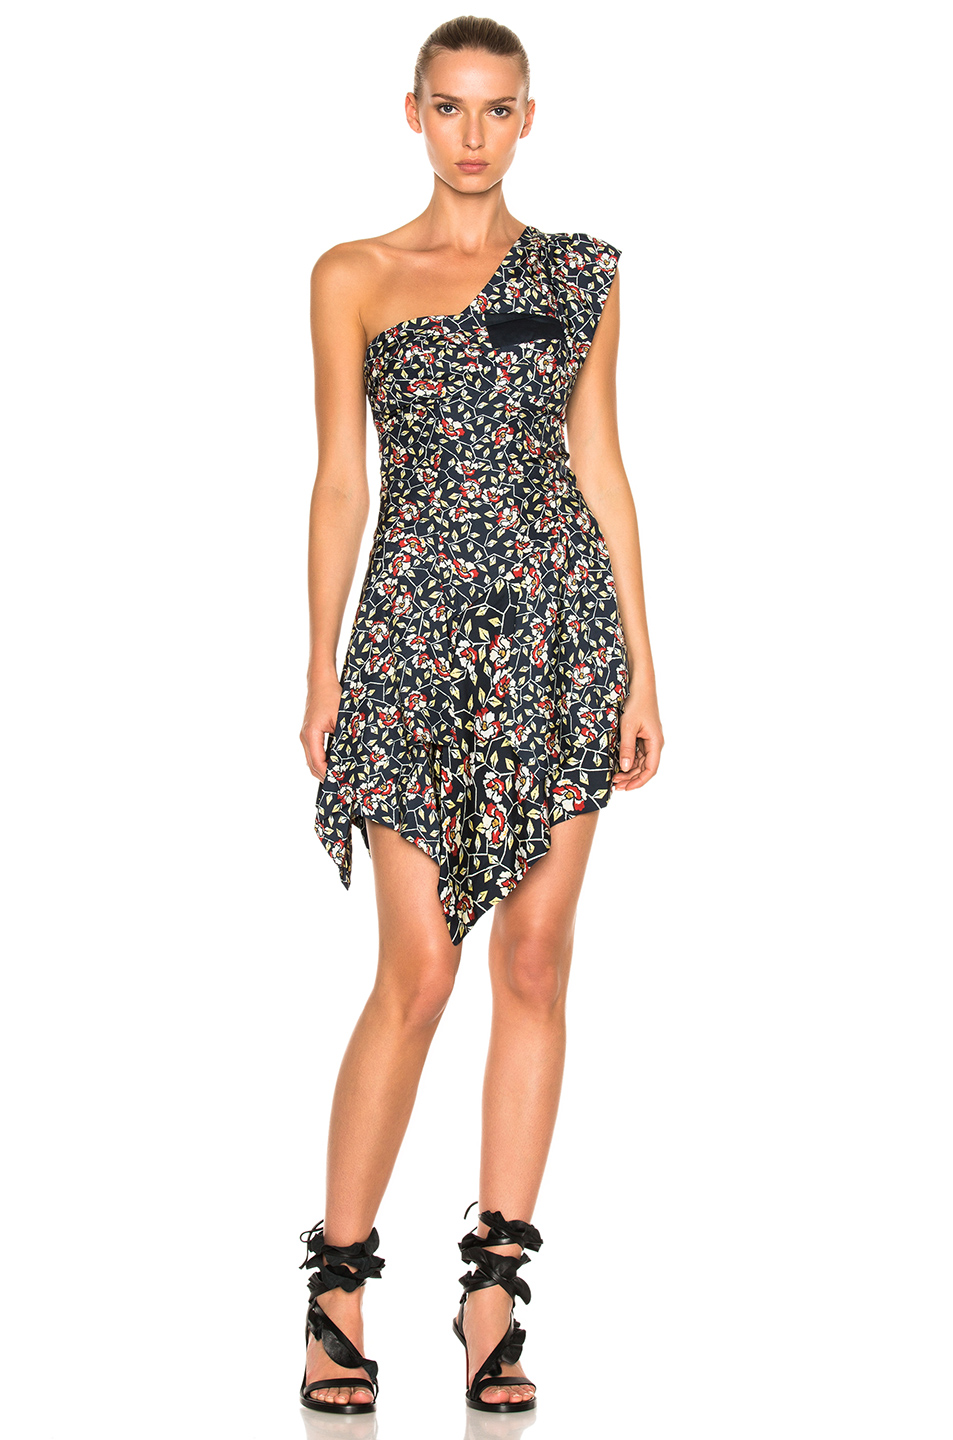 Isabel Marant Ricco Dress in Black,Floral,Red,Yellow